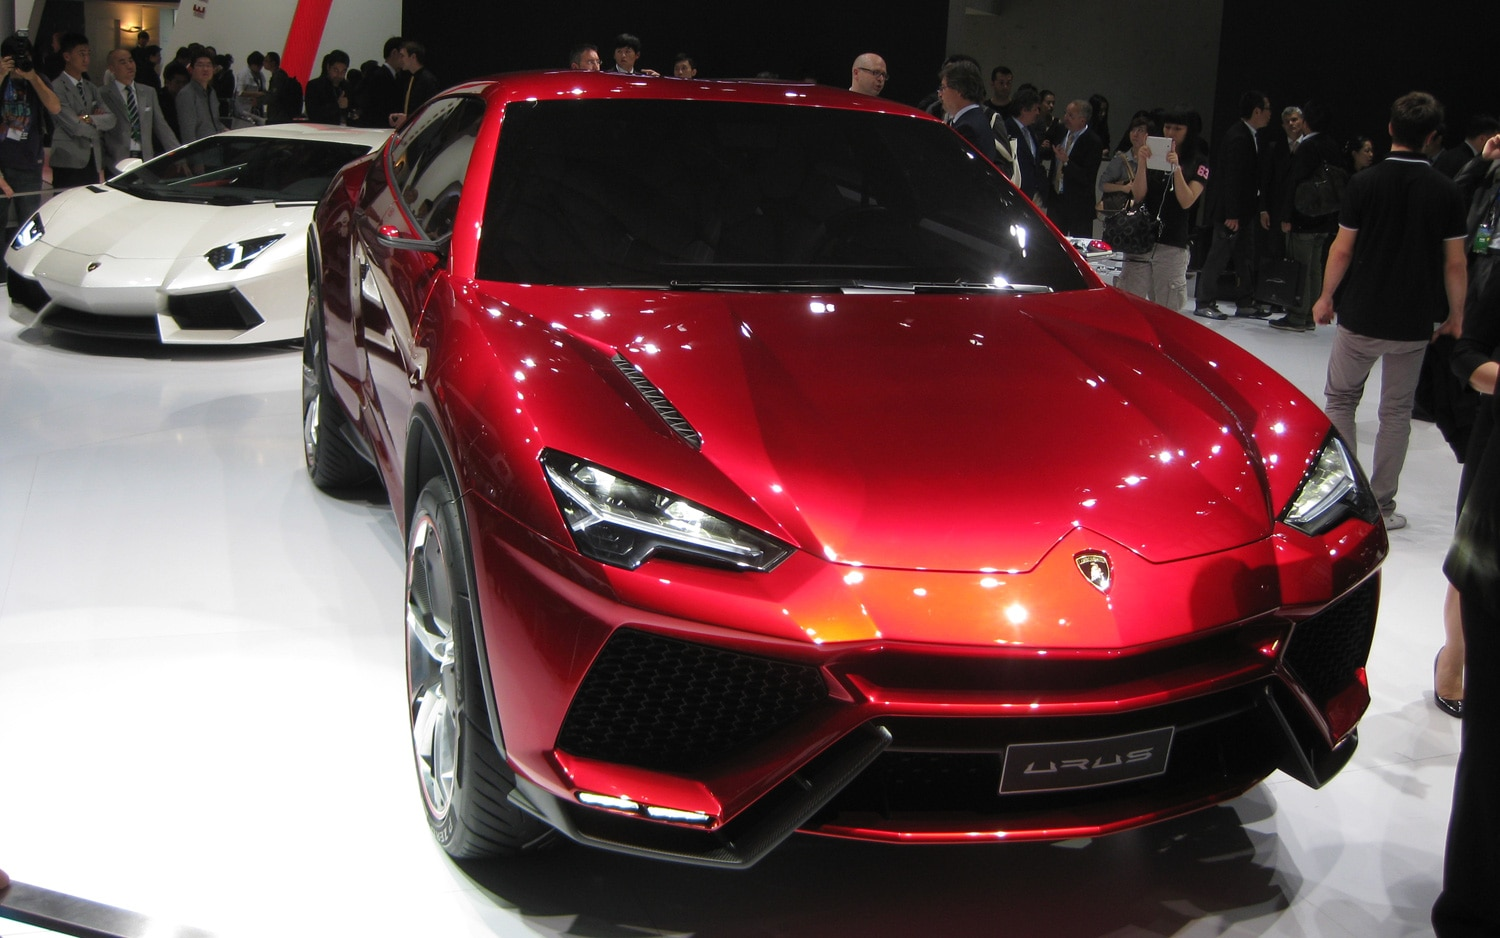 beijing 2012 lamborghini urus suv concept debuts to cheers and applause. Black Bedroom Furniture Sets. Home Design Ideas